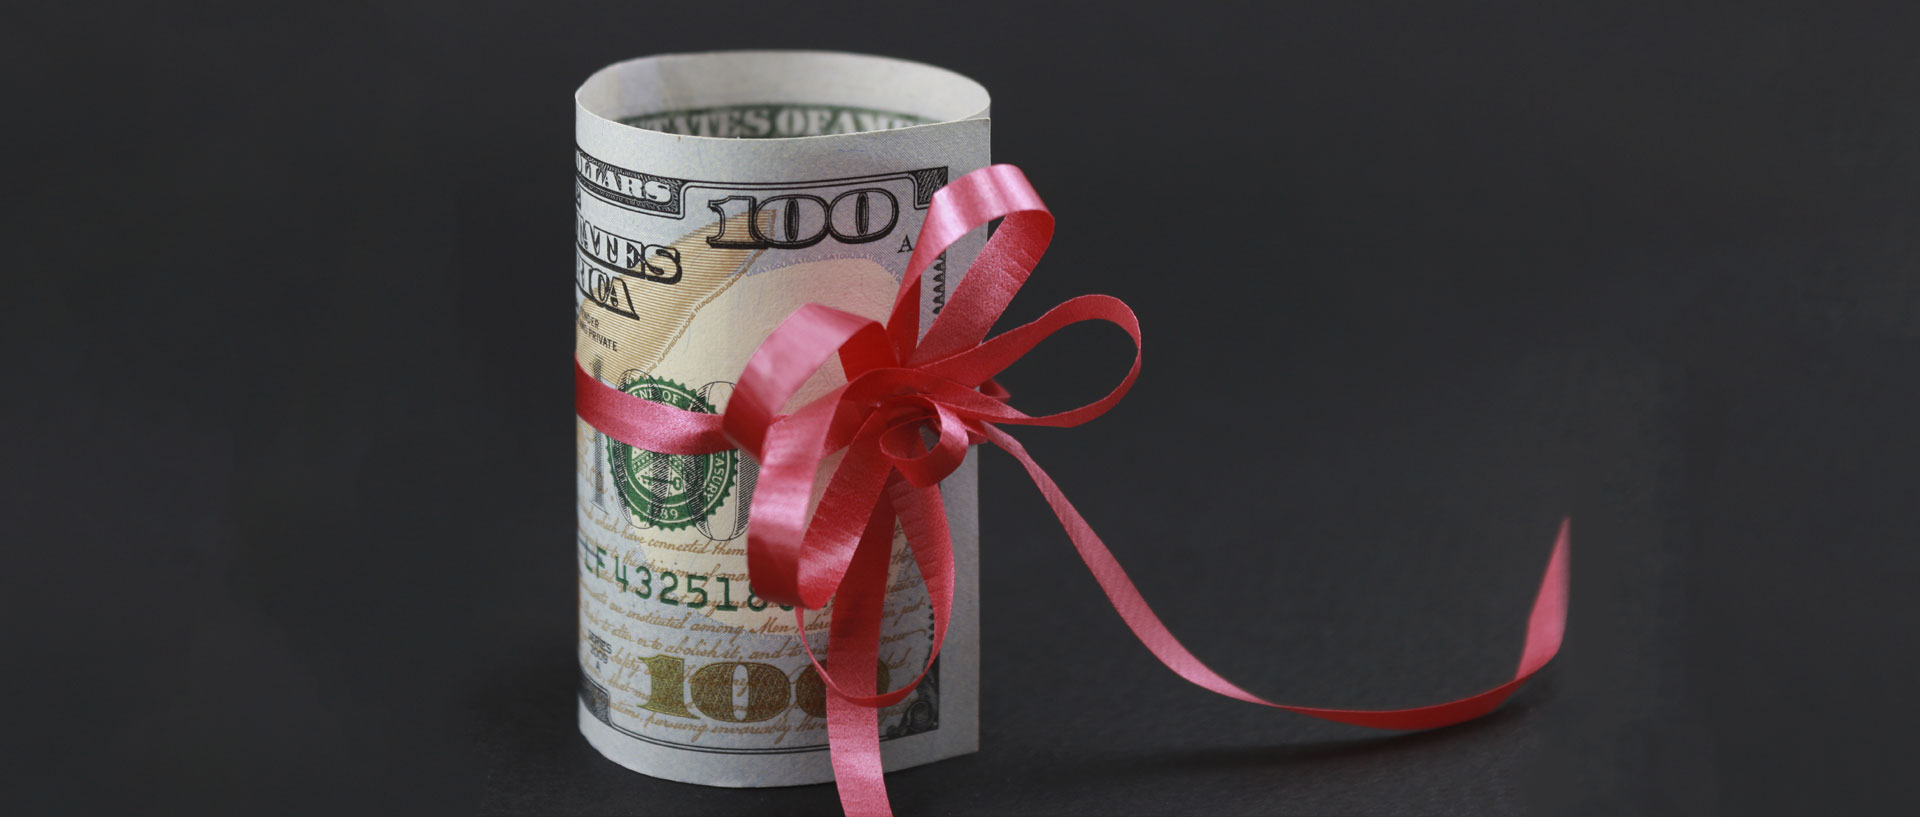 Why Cash Is Always a Good Gift - Consumer Reports c09b37d7d